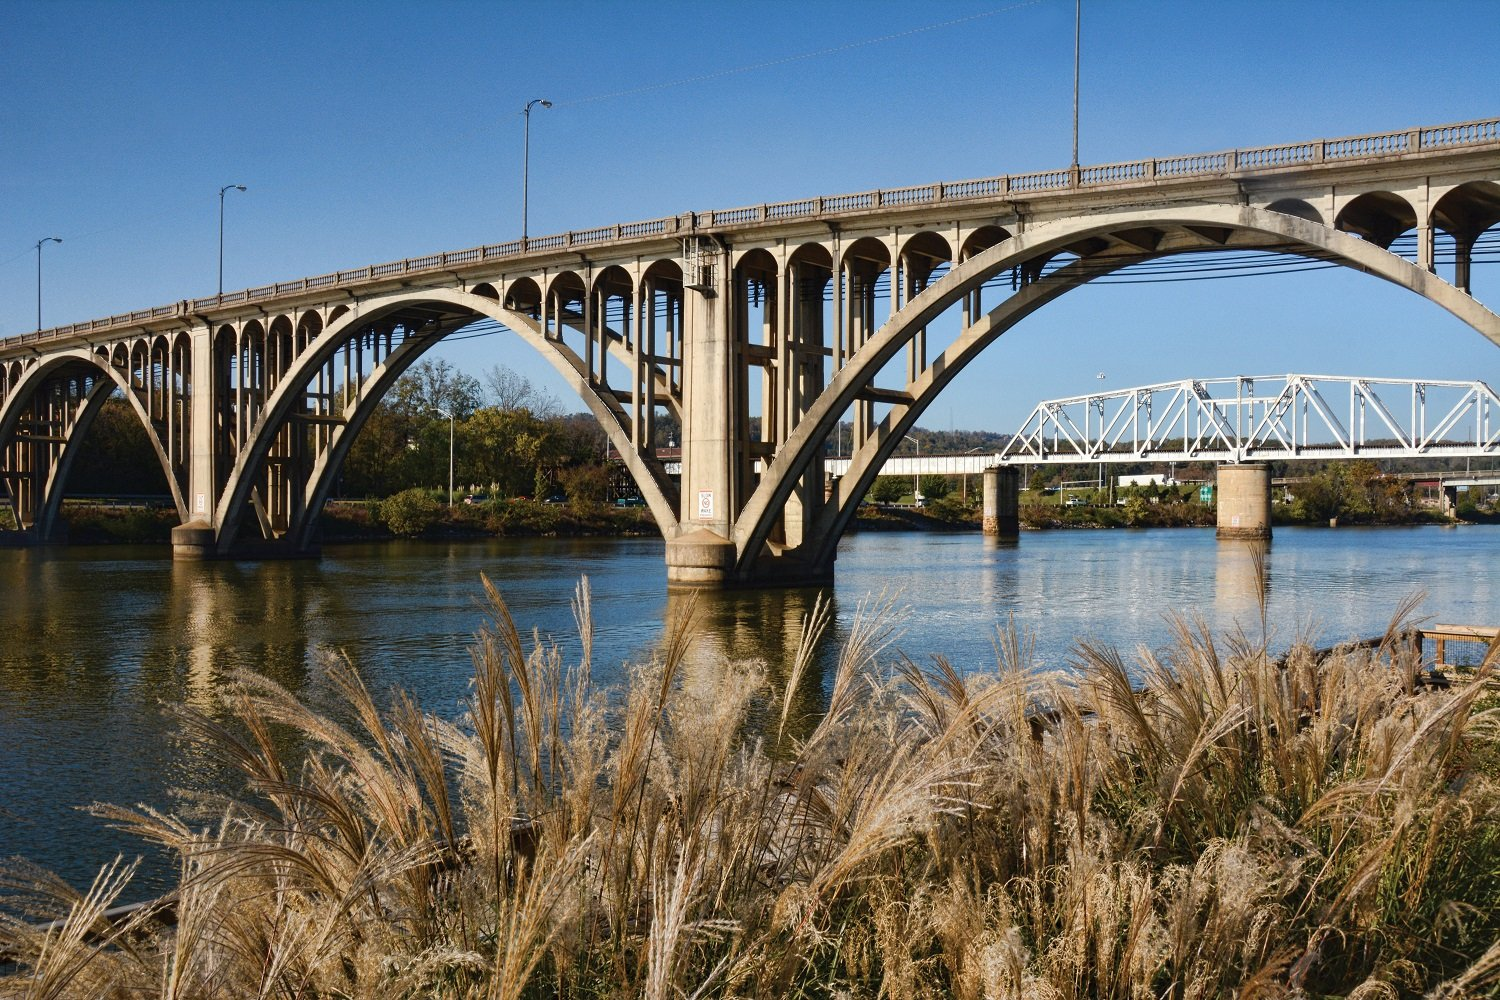 The Coosa River flows under the Meighan Bridge in Gadsden. The city is just beginning to take advantage of the river's beauty. (Karim Shamsi-Basha / Shorelines)